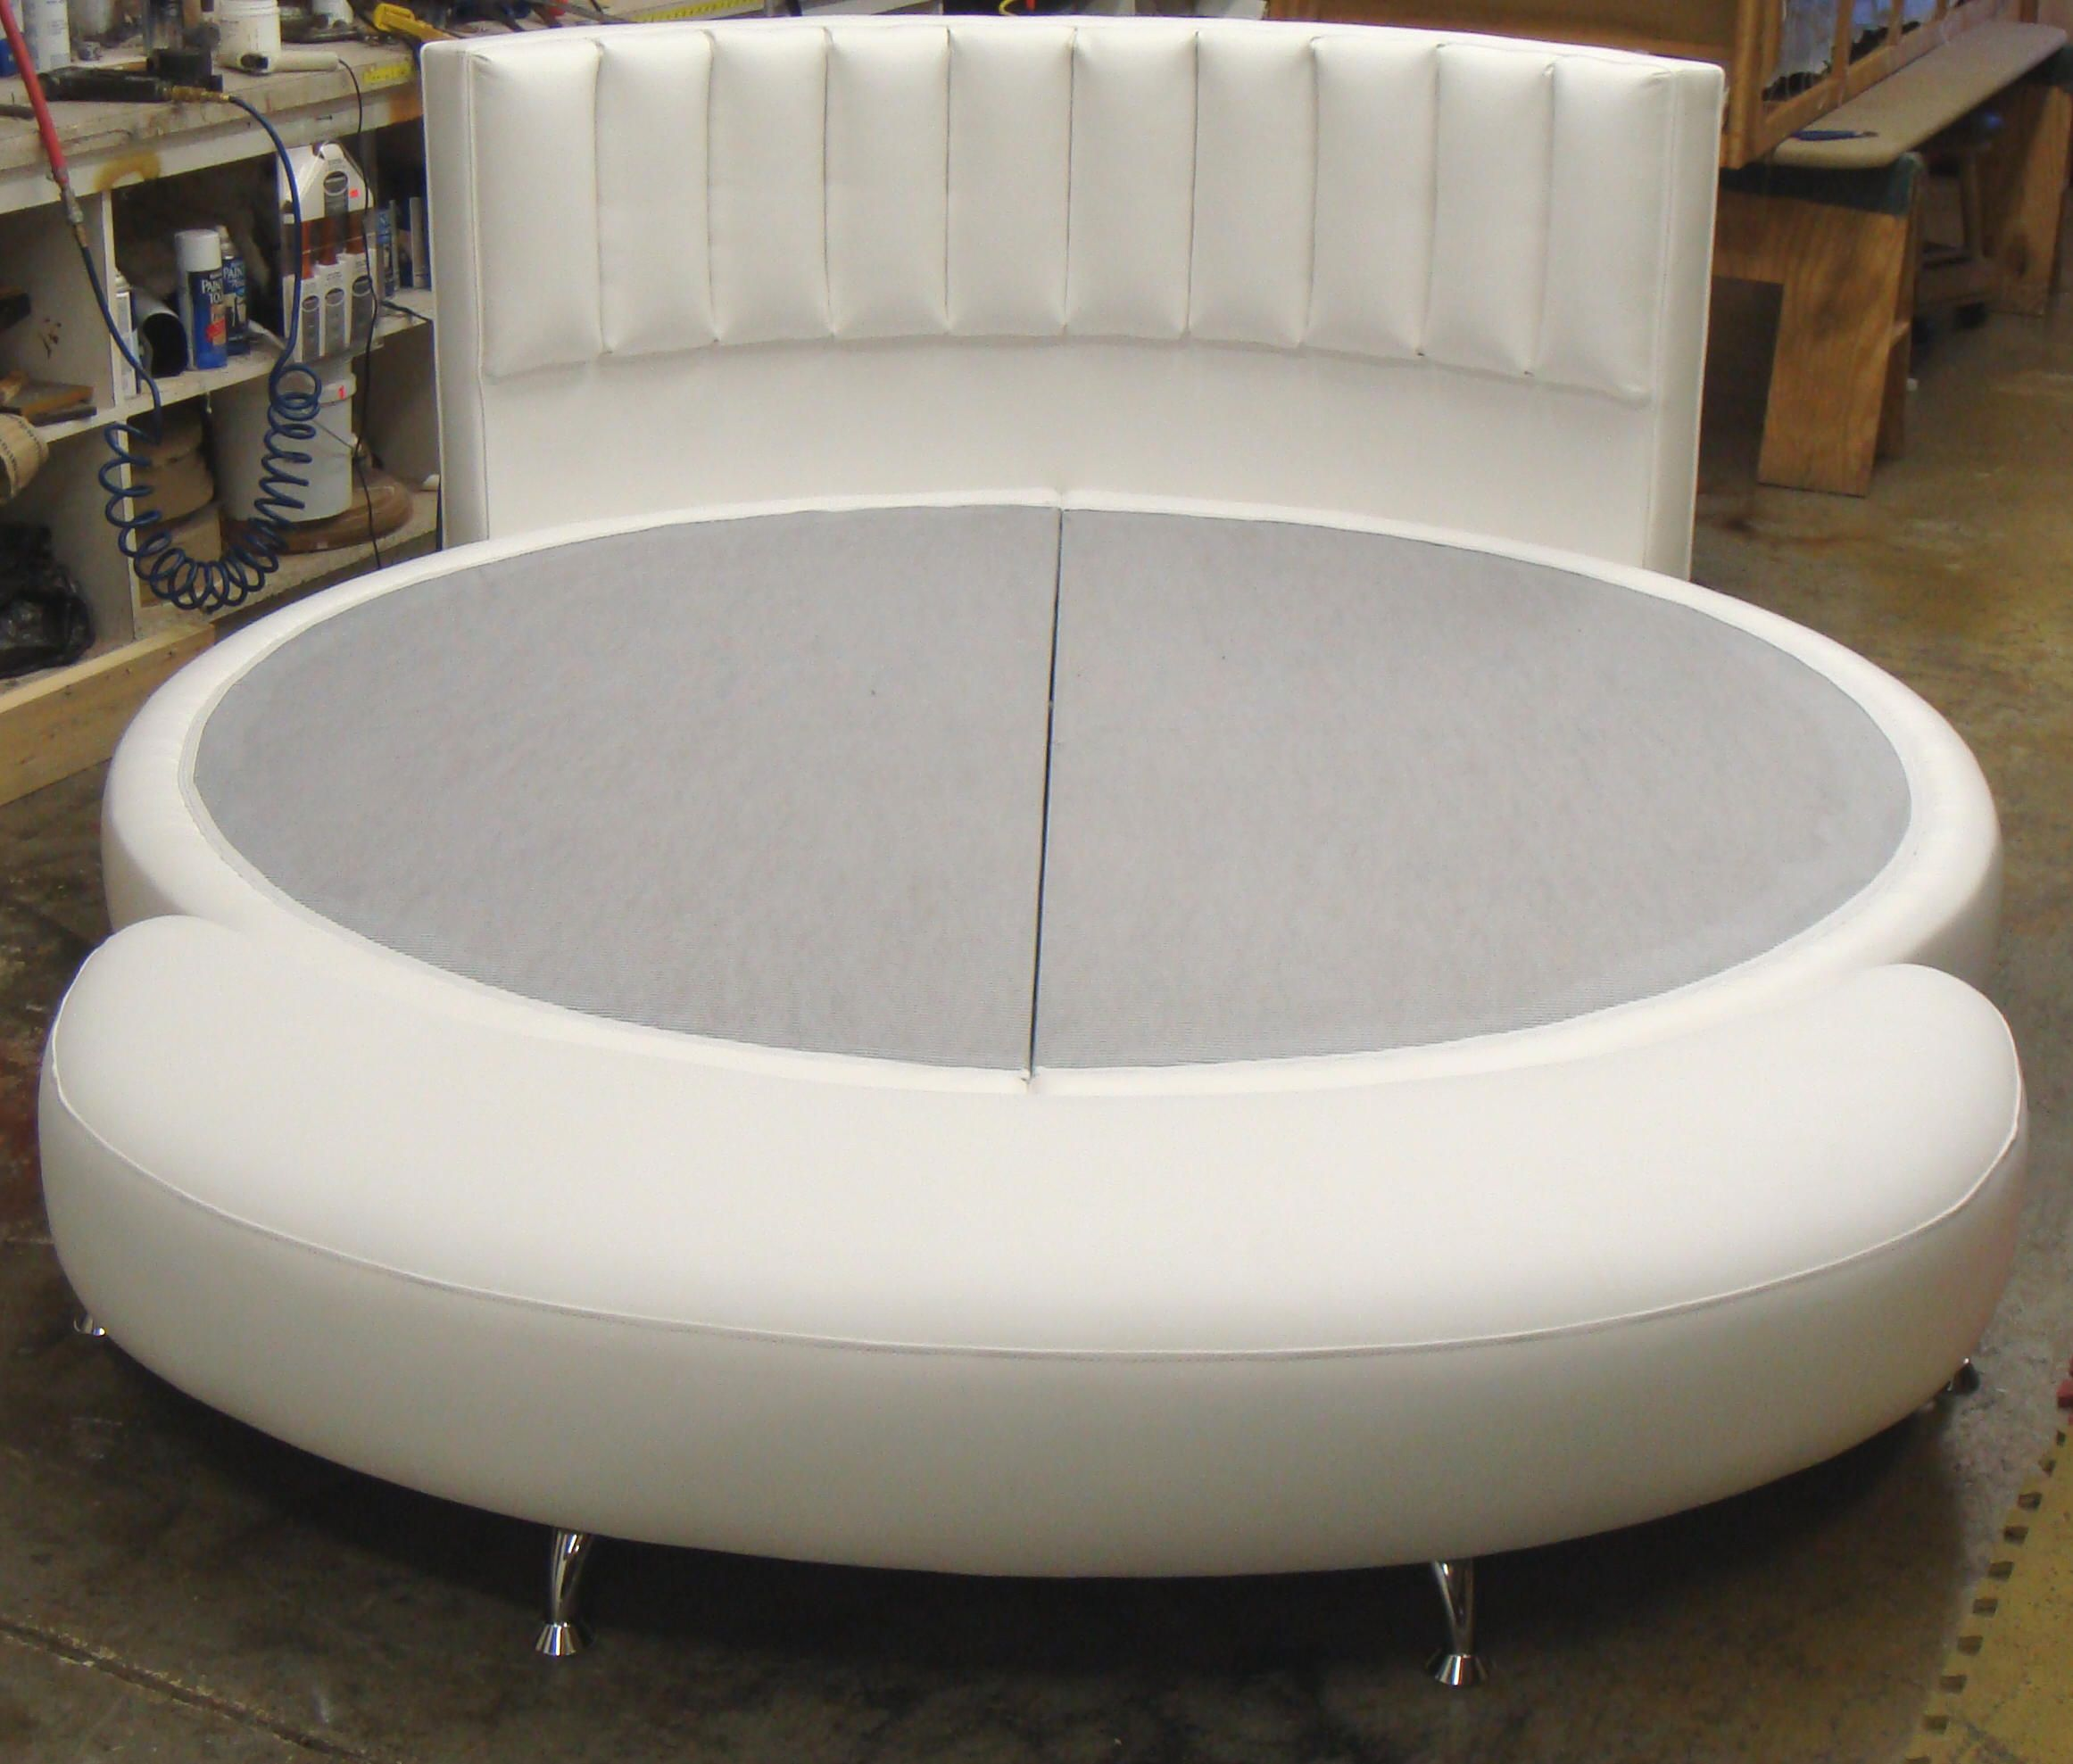 Steps To Make Your Own Daybed The King Size Mattress